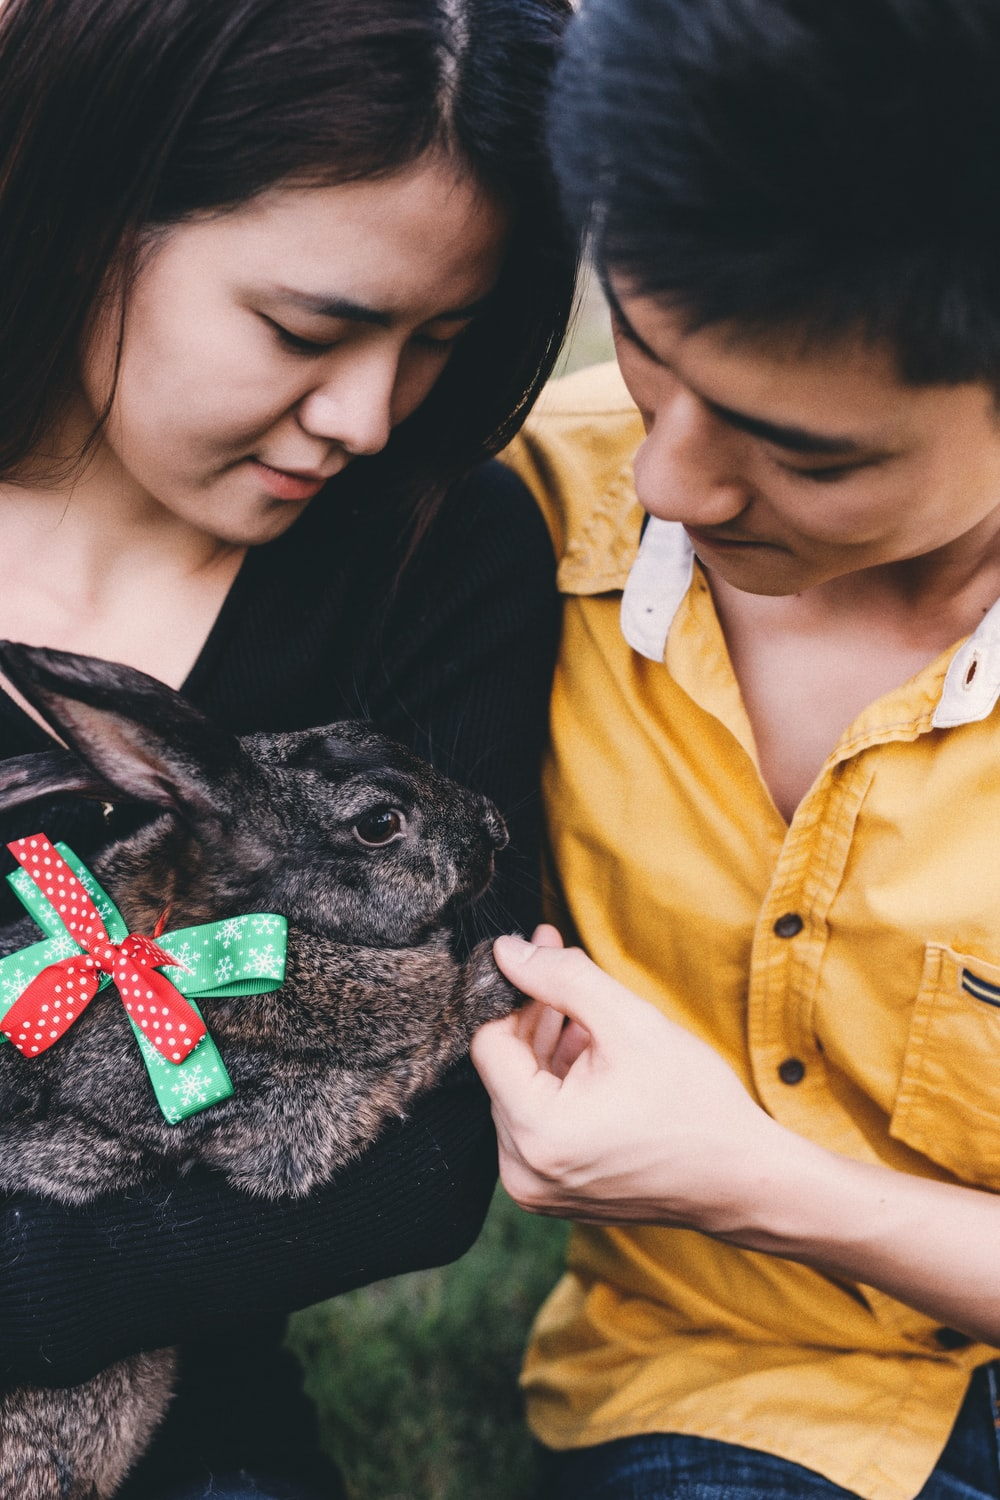 man and woman holding rabbit